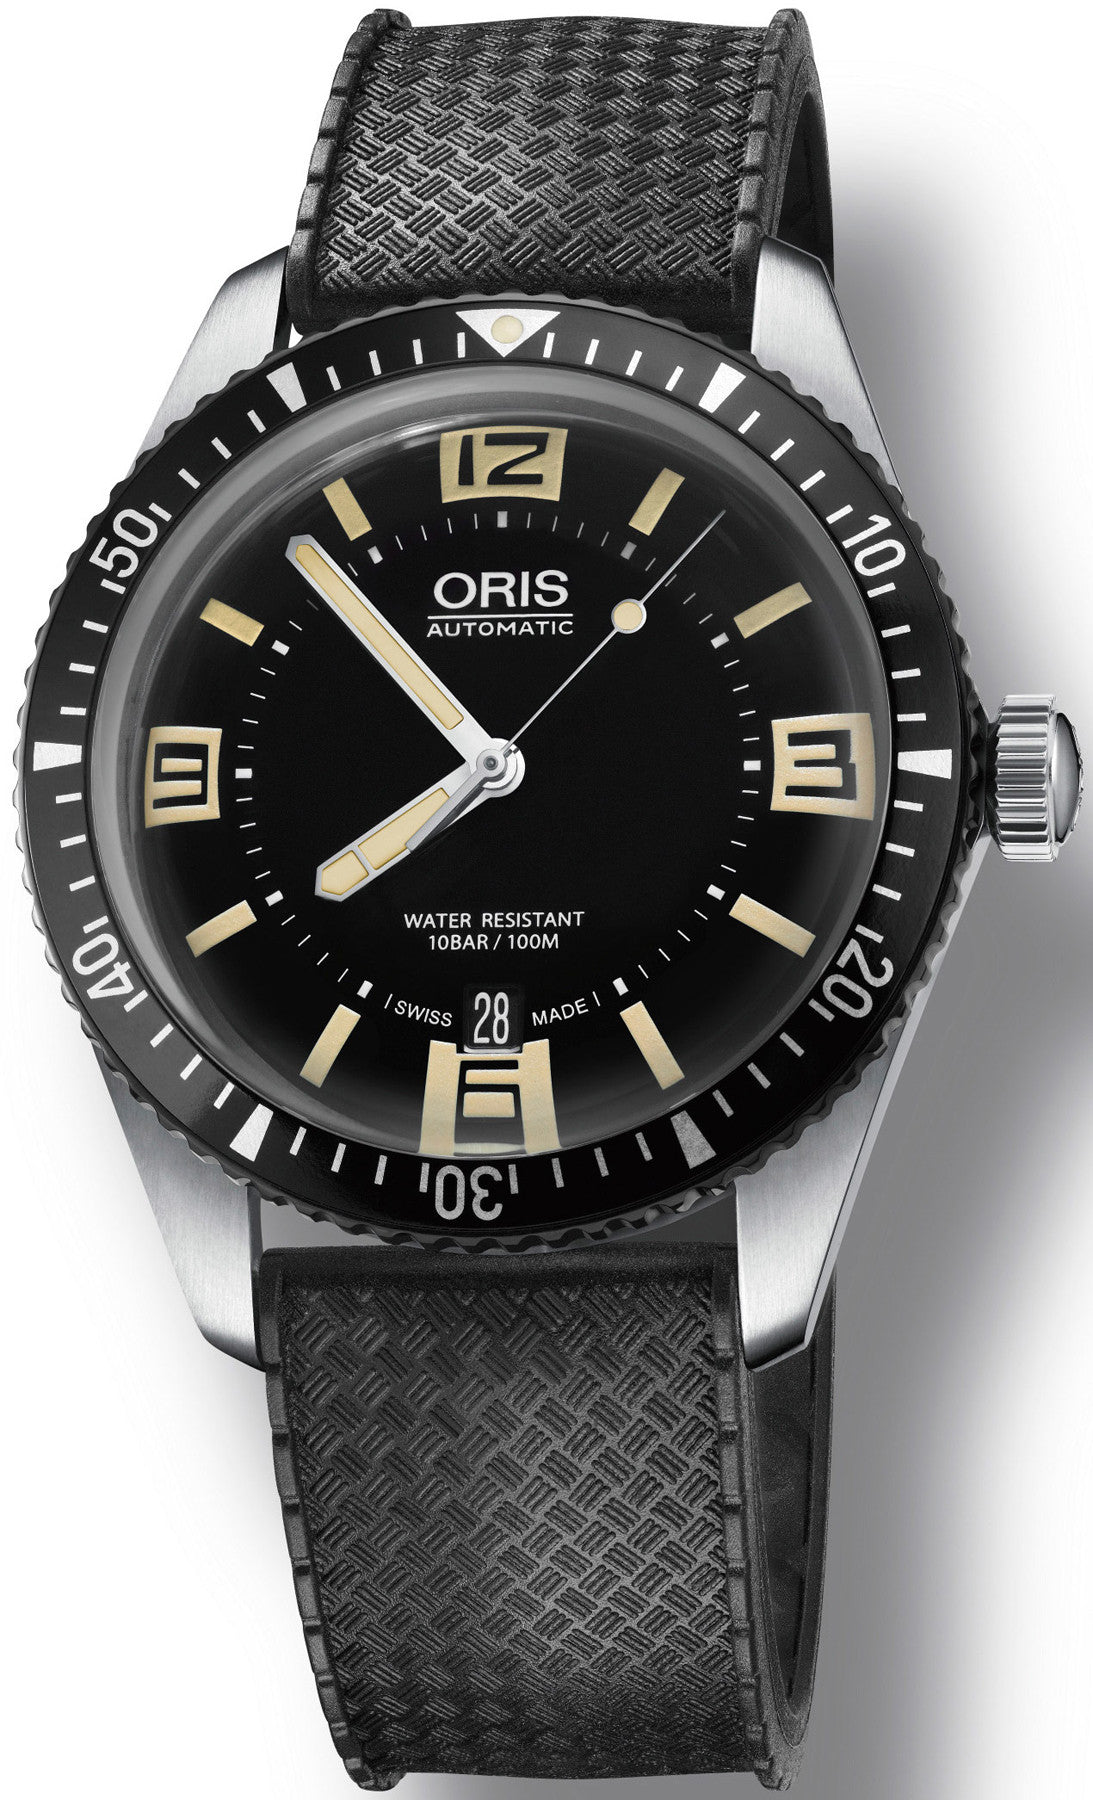 of aquis to chrono oris a collection growing dive has diving add introduced oceanictime new its chronograph for watches ever